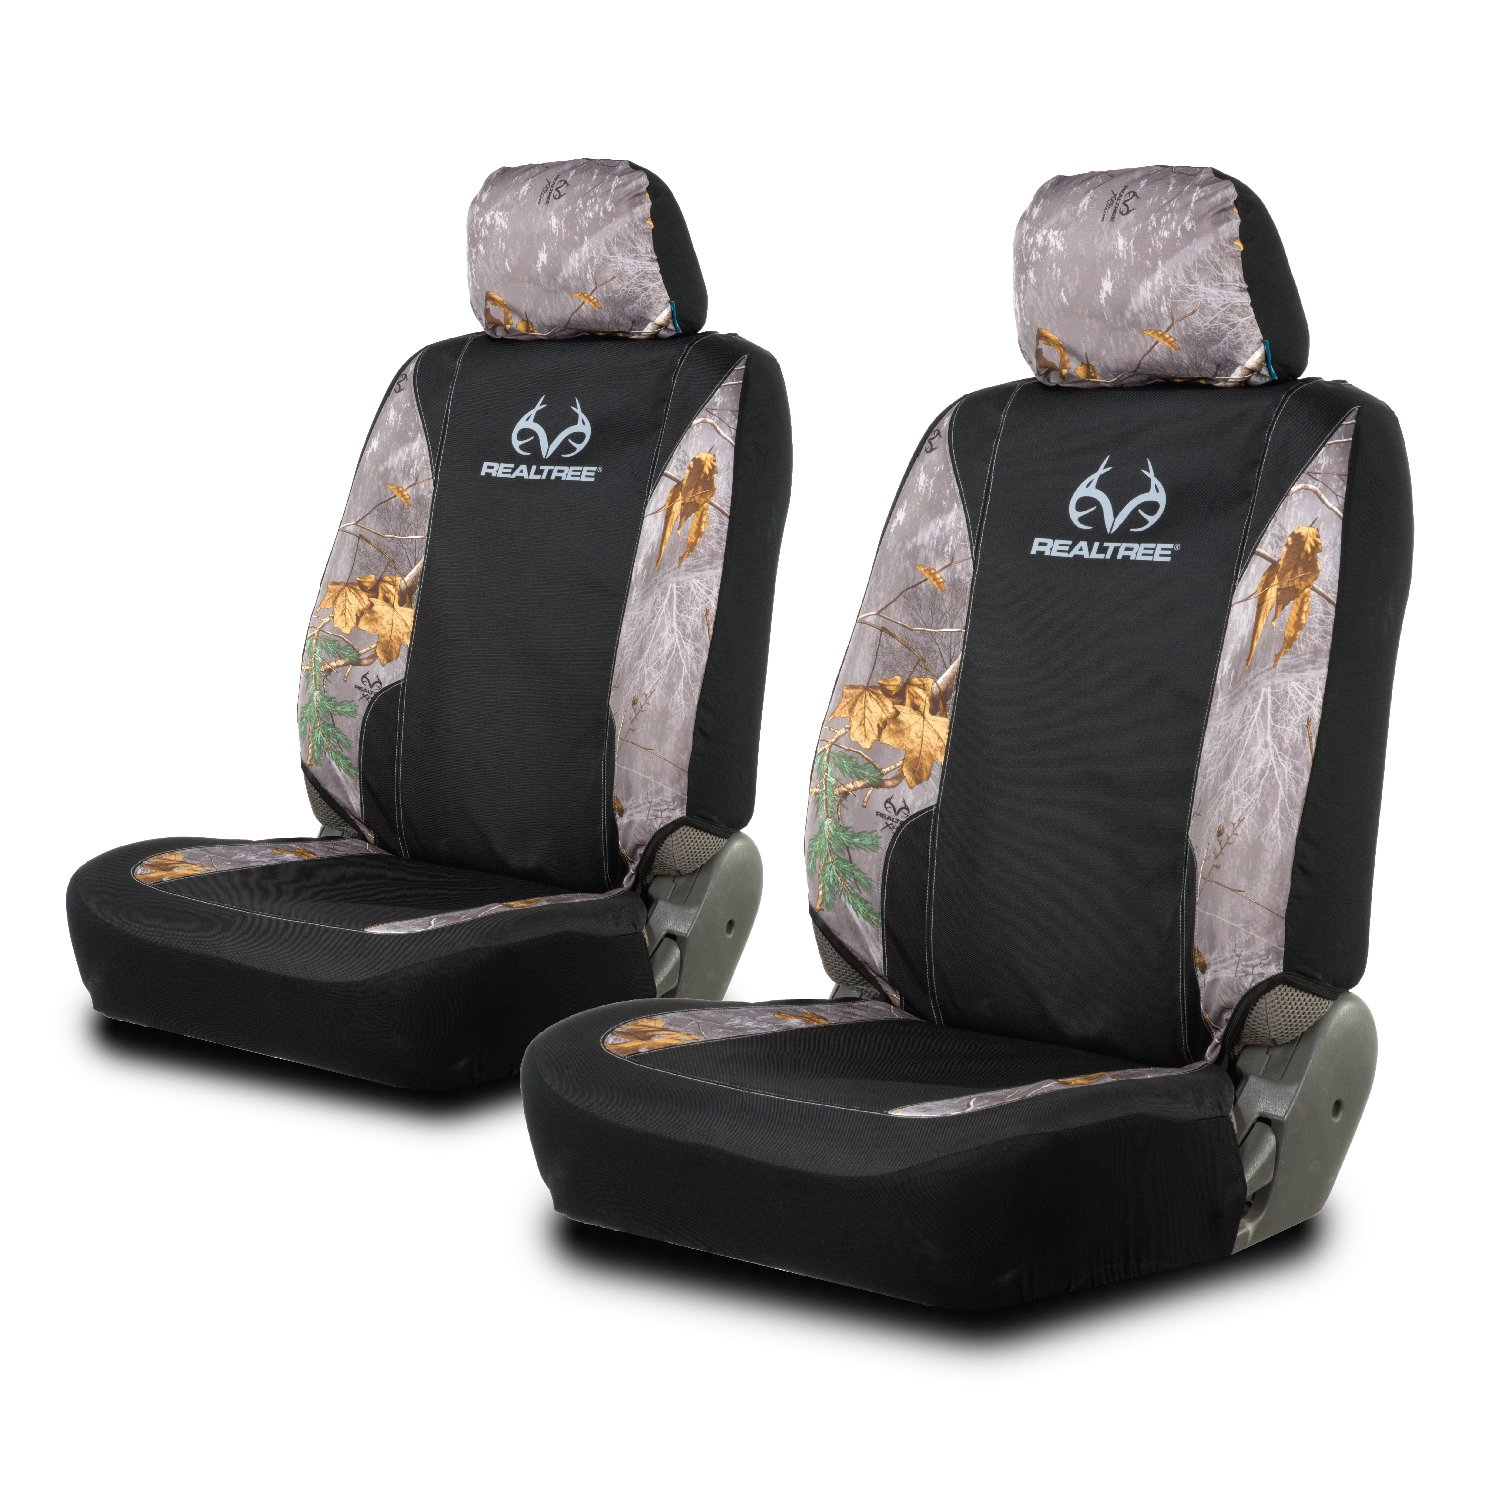 Magnificent Realtree Low Back Camo Seat Covers For Car And Truck Fits Most Low Back Seats Uwap Interior Chair Design Uwaporg